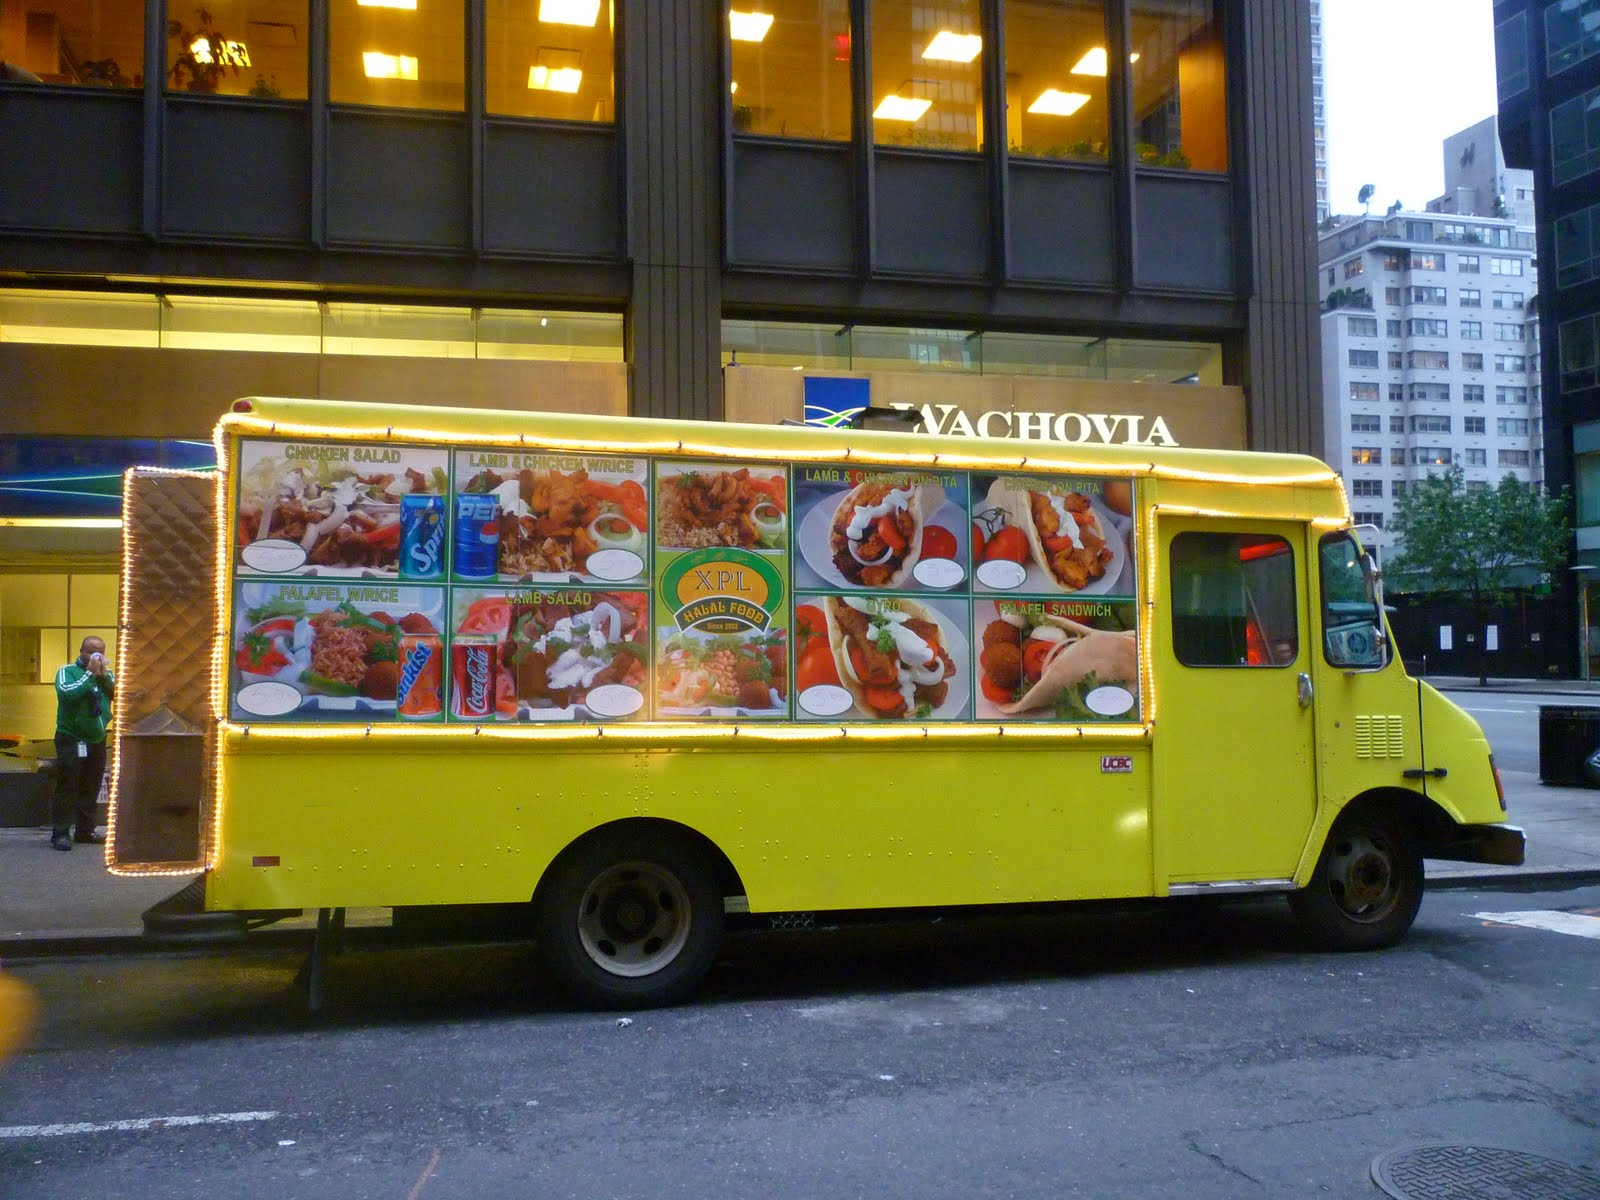 Cool food trucks pictures to pin on pinterest pinsdaddy for Cool food truck designs